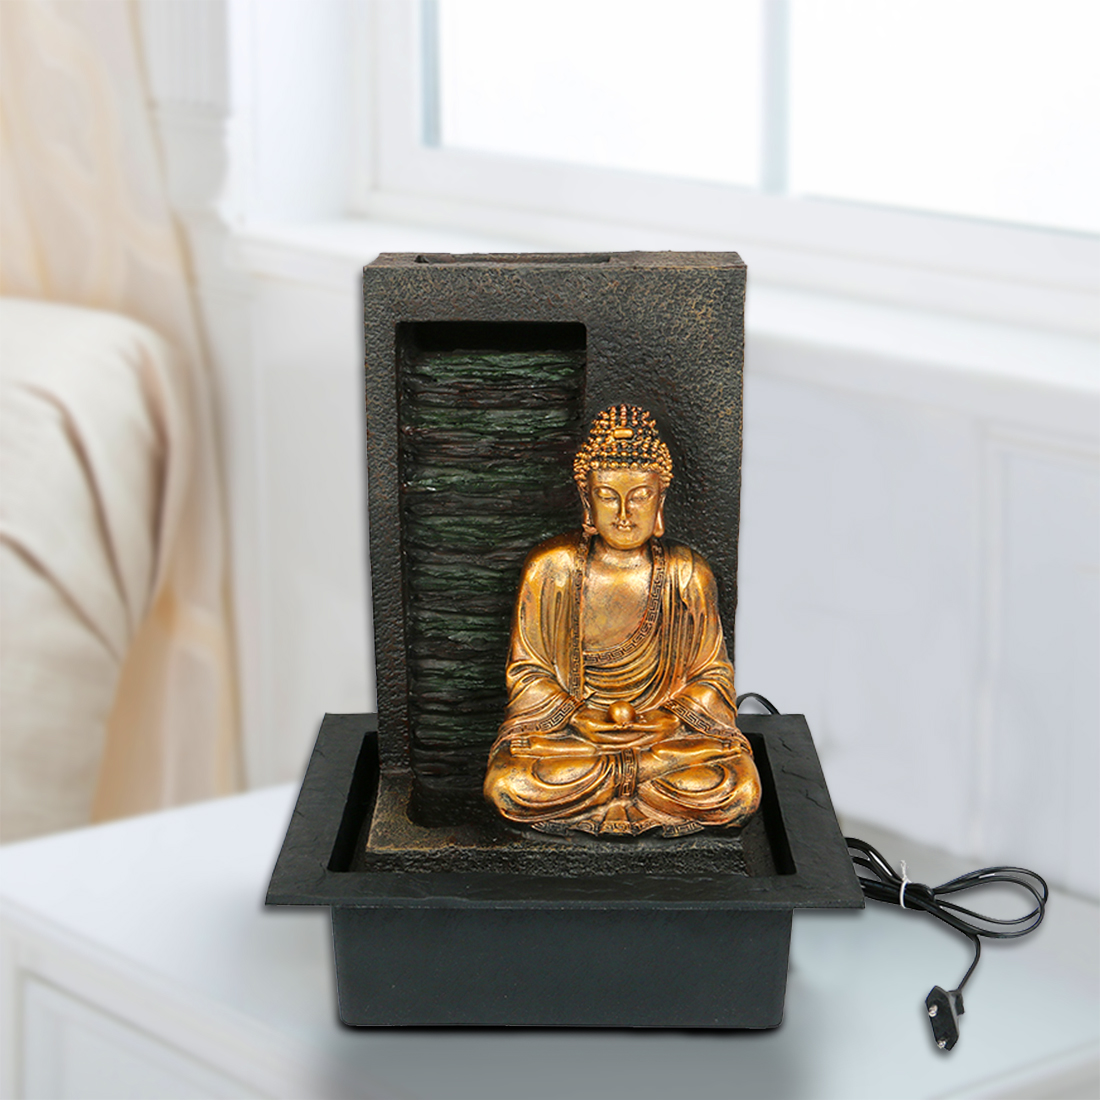 HomeTown Impression Buddha Water Fall Fountain Polyresin Small Fountains in Brown & Gold Colour by HomeTown